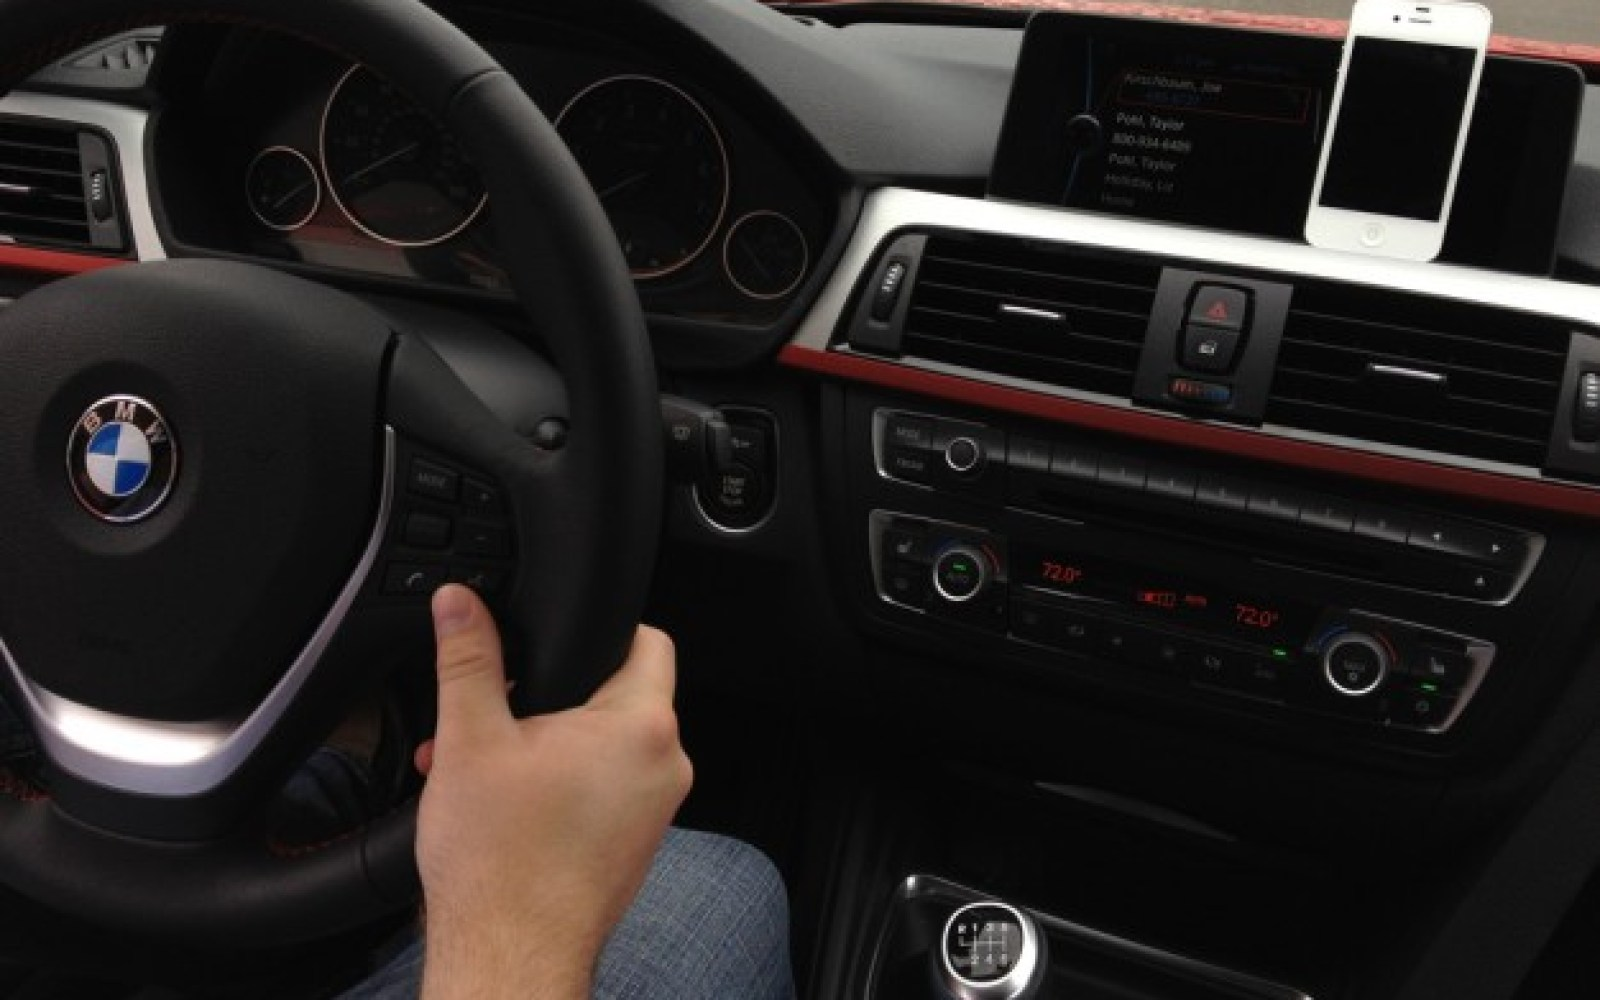 In iOS 7, Apple wants to own your car's console with Maps and Siri integration